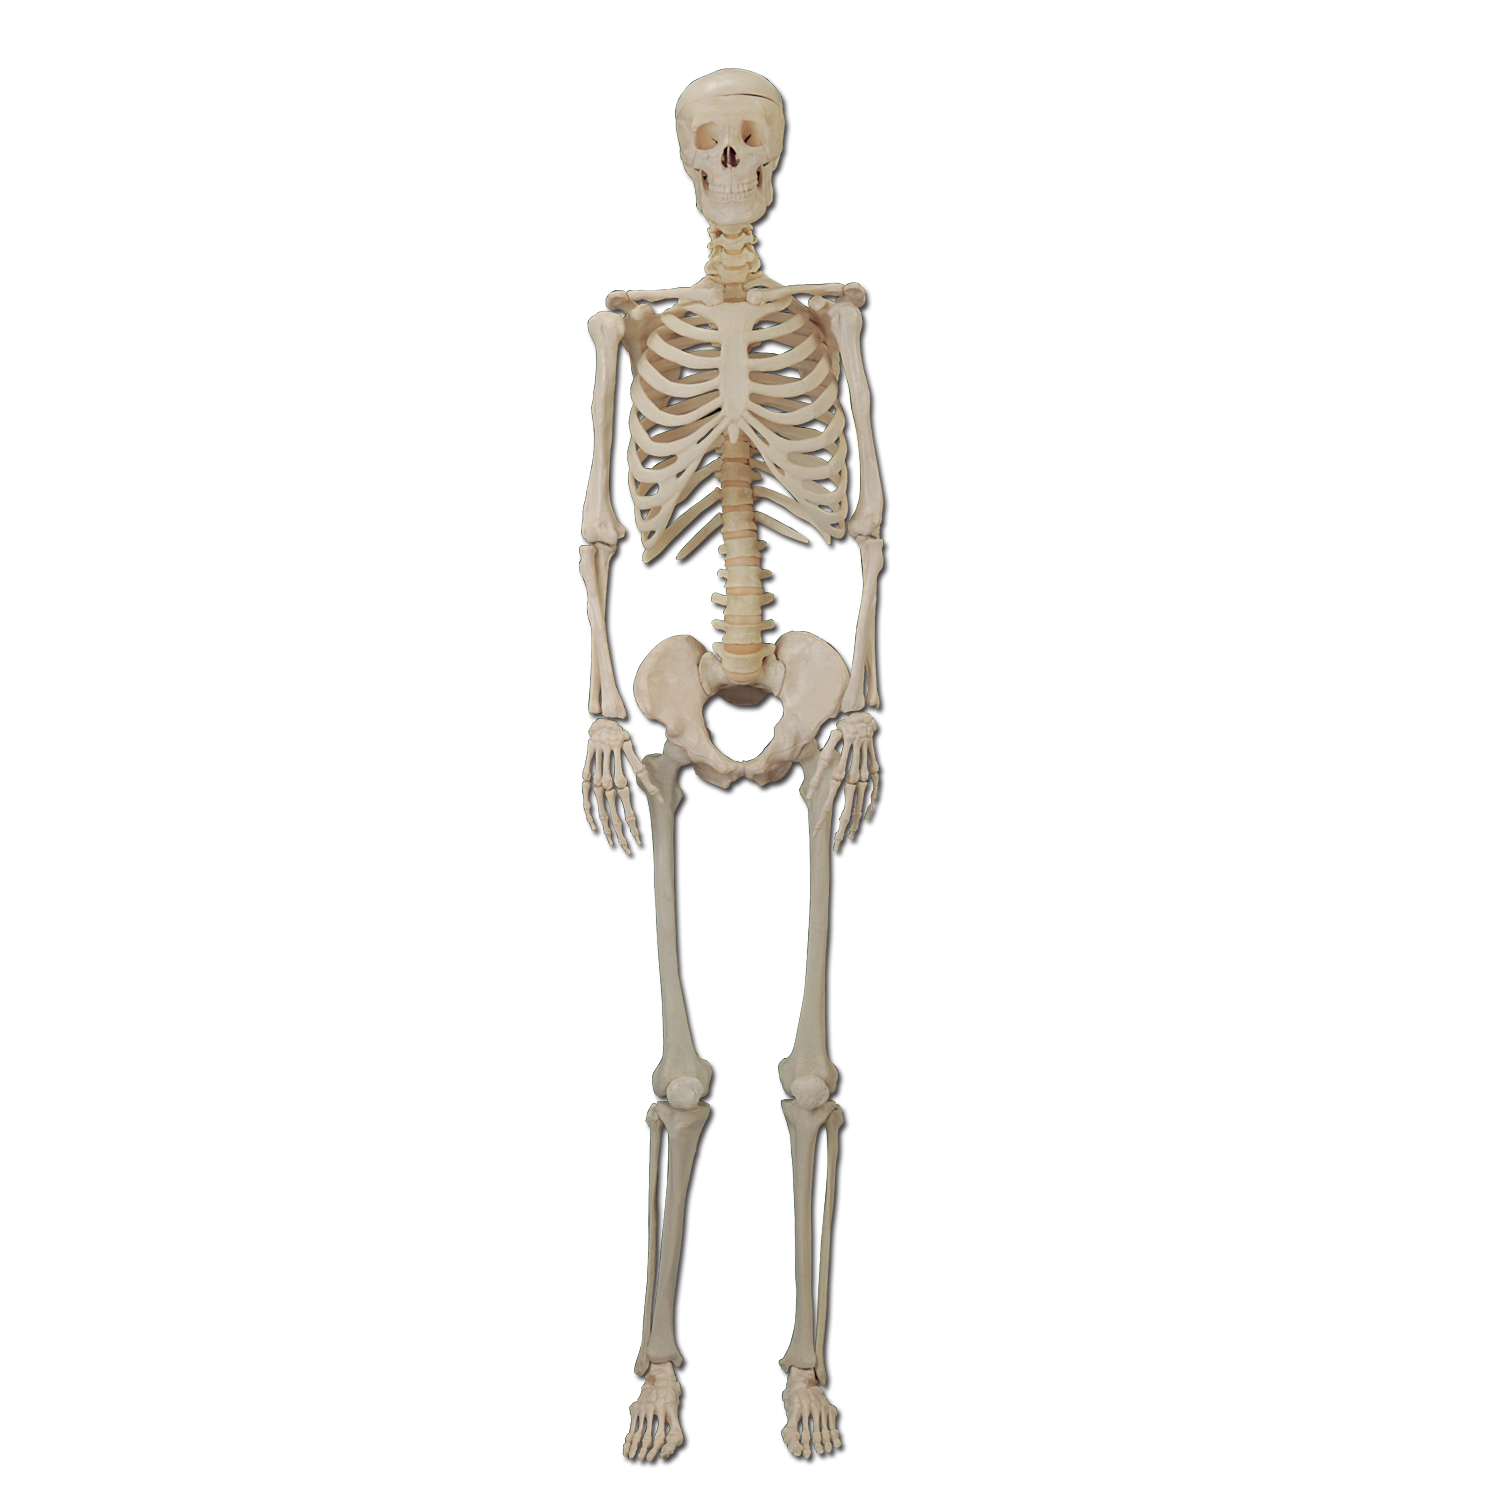 Human bone png. Skeleton body organ transprent